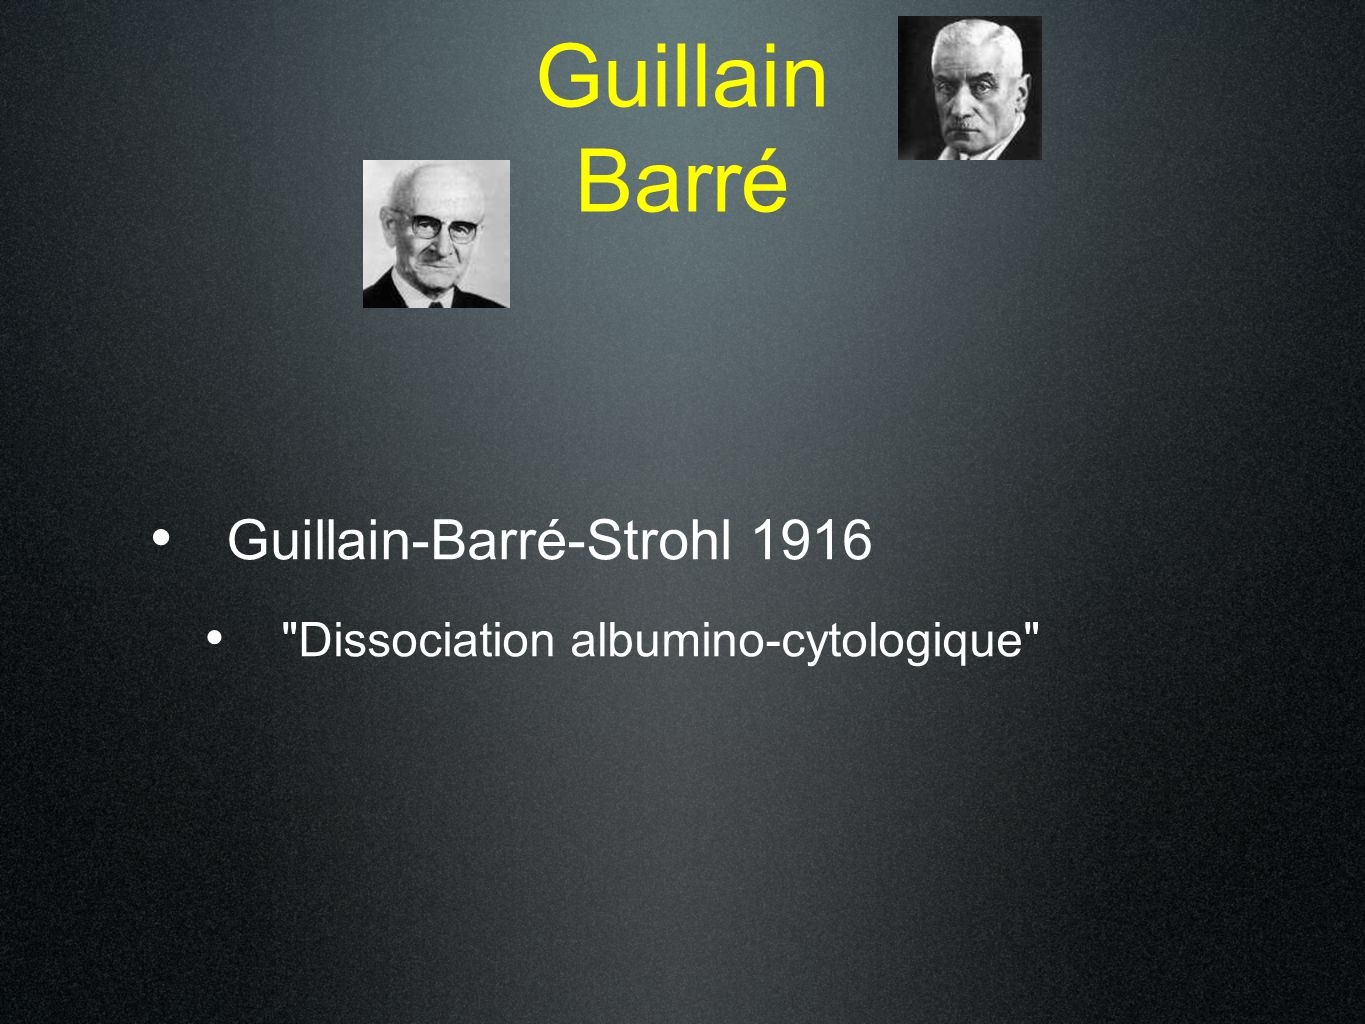 Guillain Barré Guillain-Barré-Strohl 1916